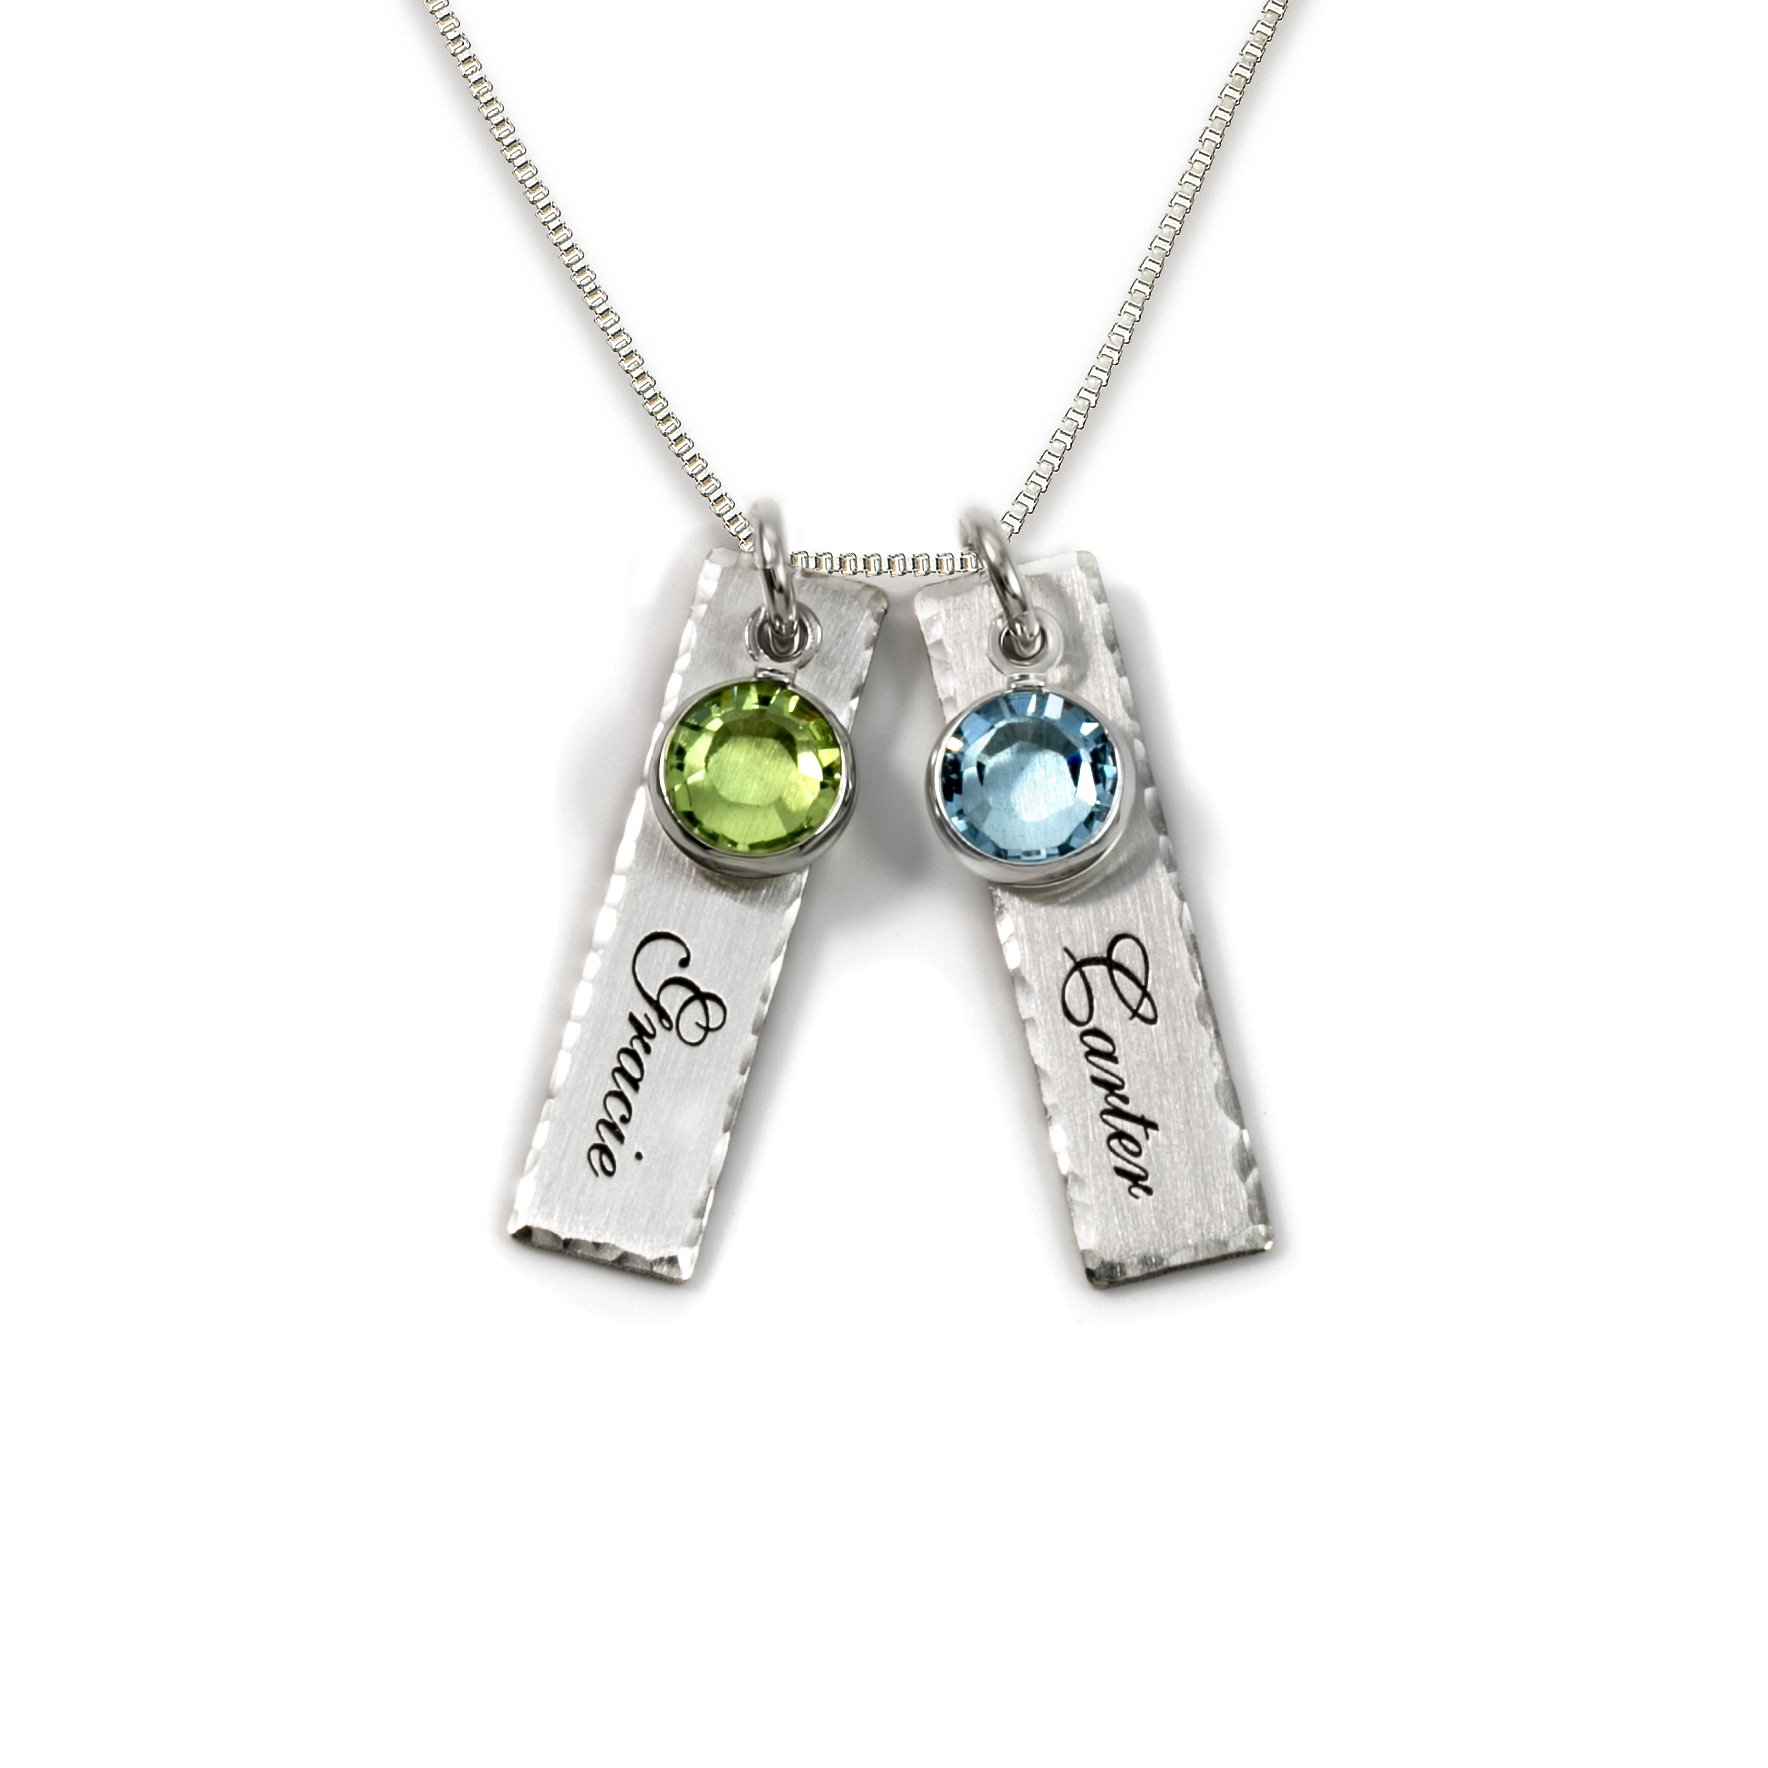 Unity in Two Personalized Charm Necklace. Customize 2 Sterling Silver Rectangular Pendants with Names of Your Choice. Choose 2 Swarovski Birthstones, and 925 Chain. Makes Gifts for Her